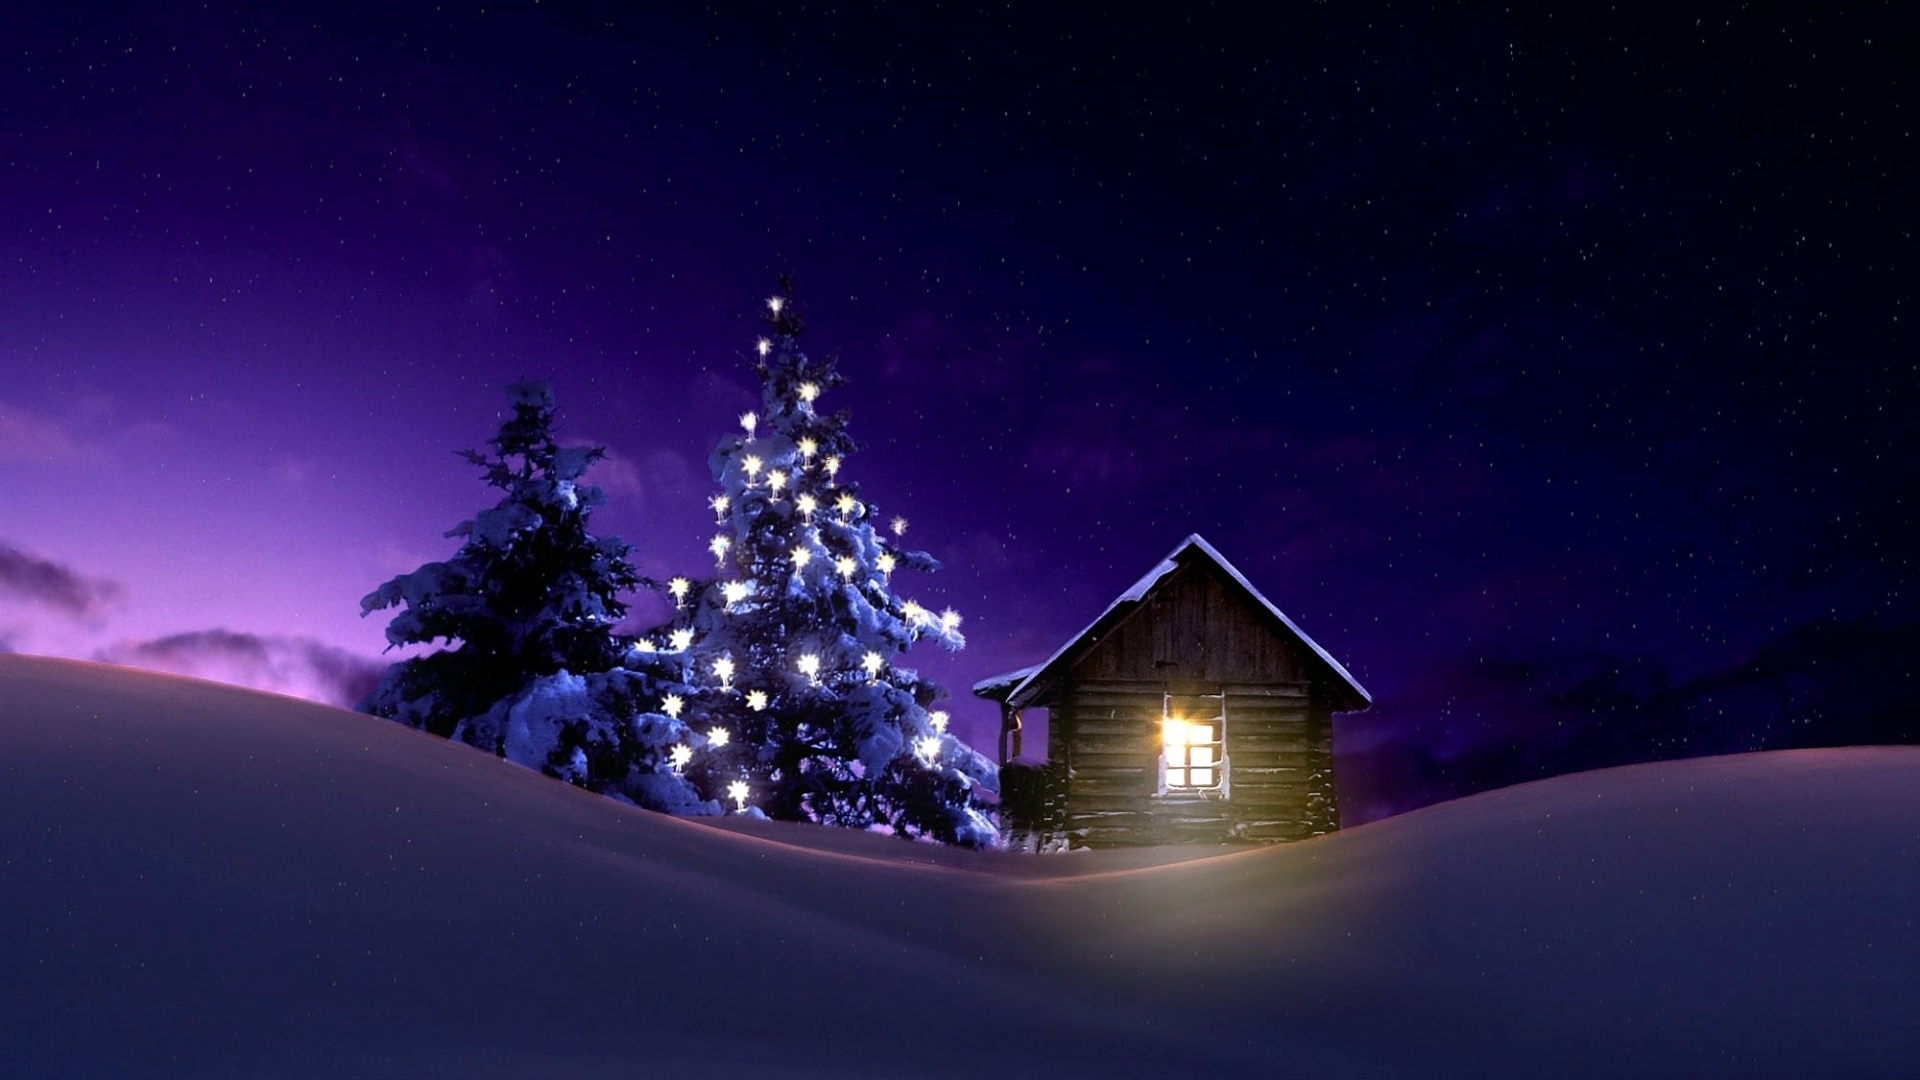 Ultra Hd Christmas Wallpapers: Christmas Lighted Tree Outside Winter Cabin, Full HD 2K